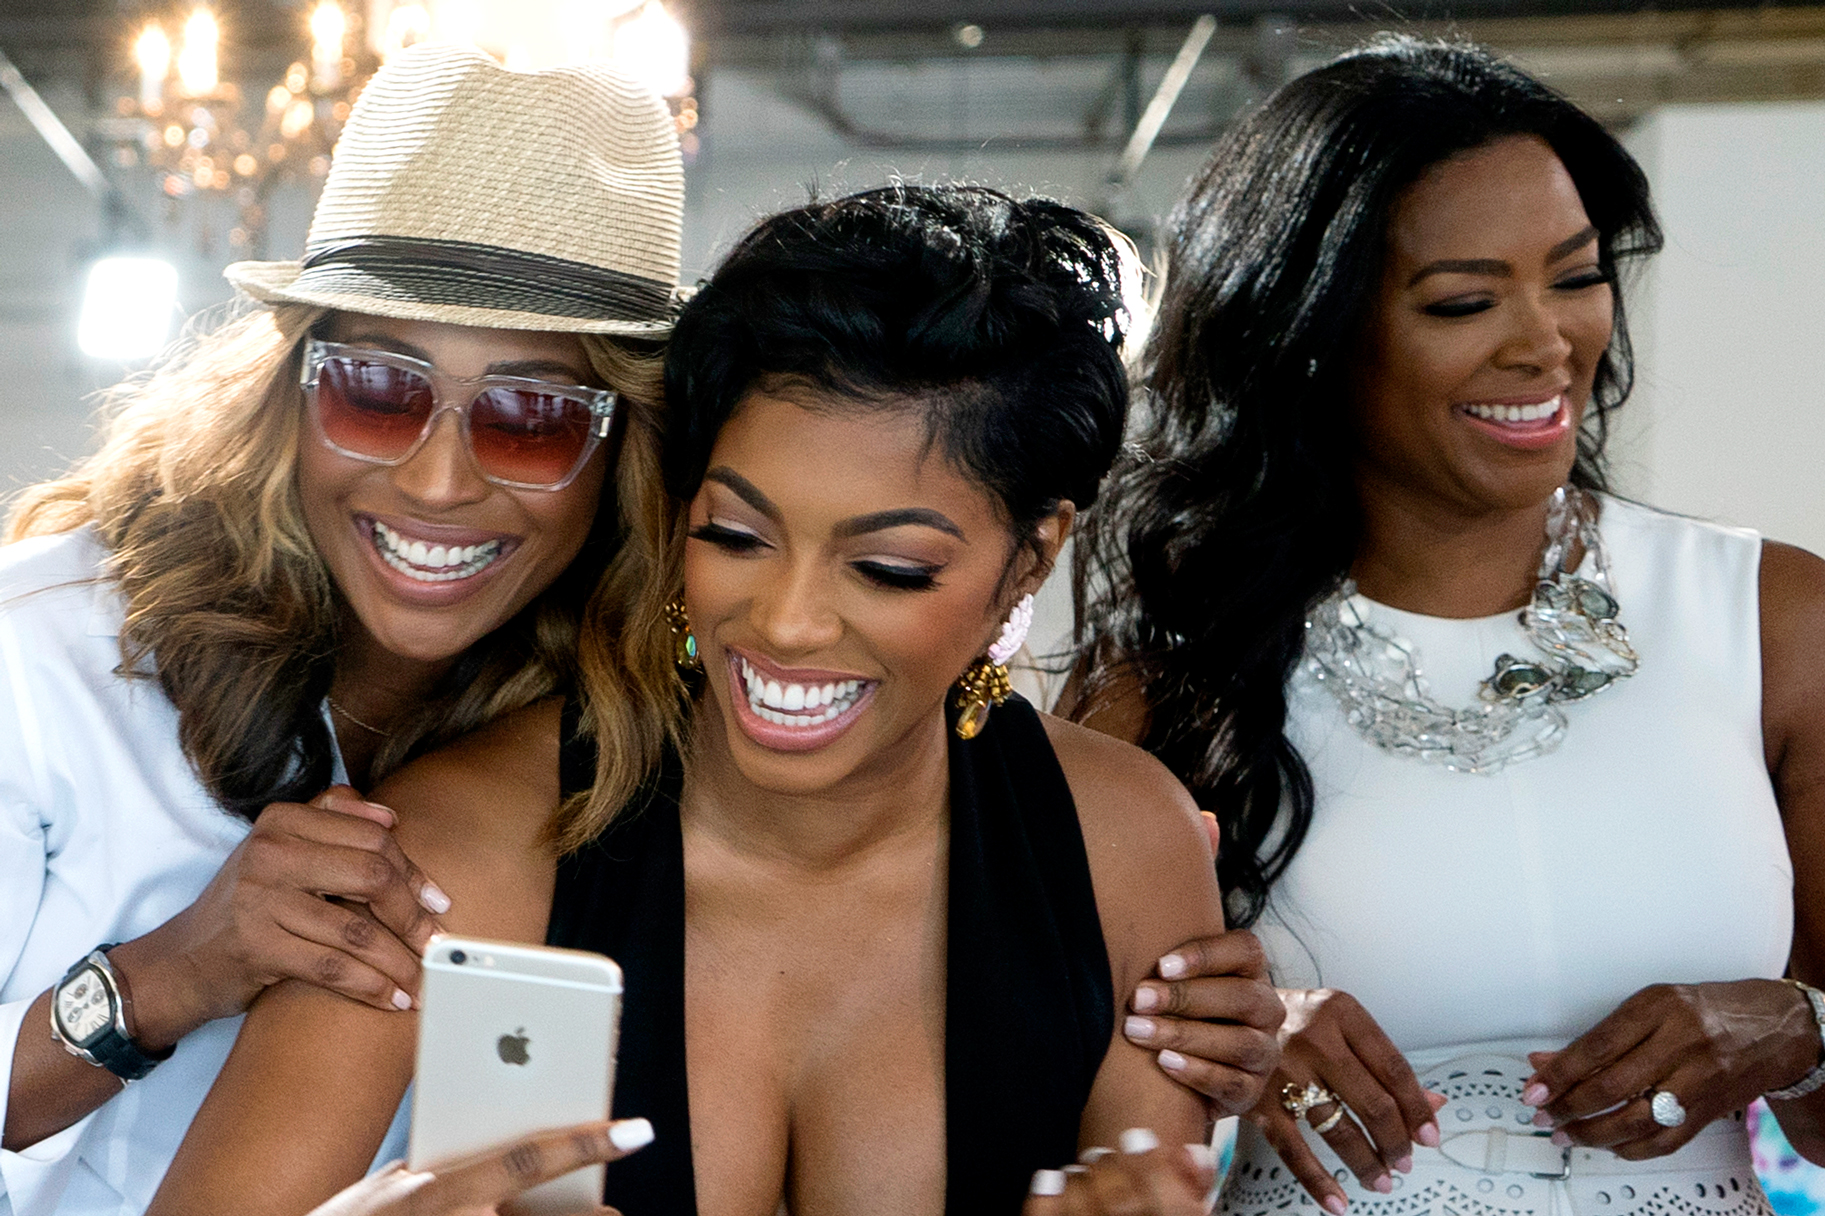 Kenya Moore And Cynthia Bailey Look Stunning At Porsha Williams' Baby Shower - Watch The Photos